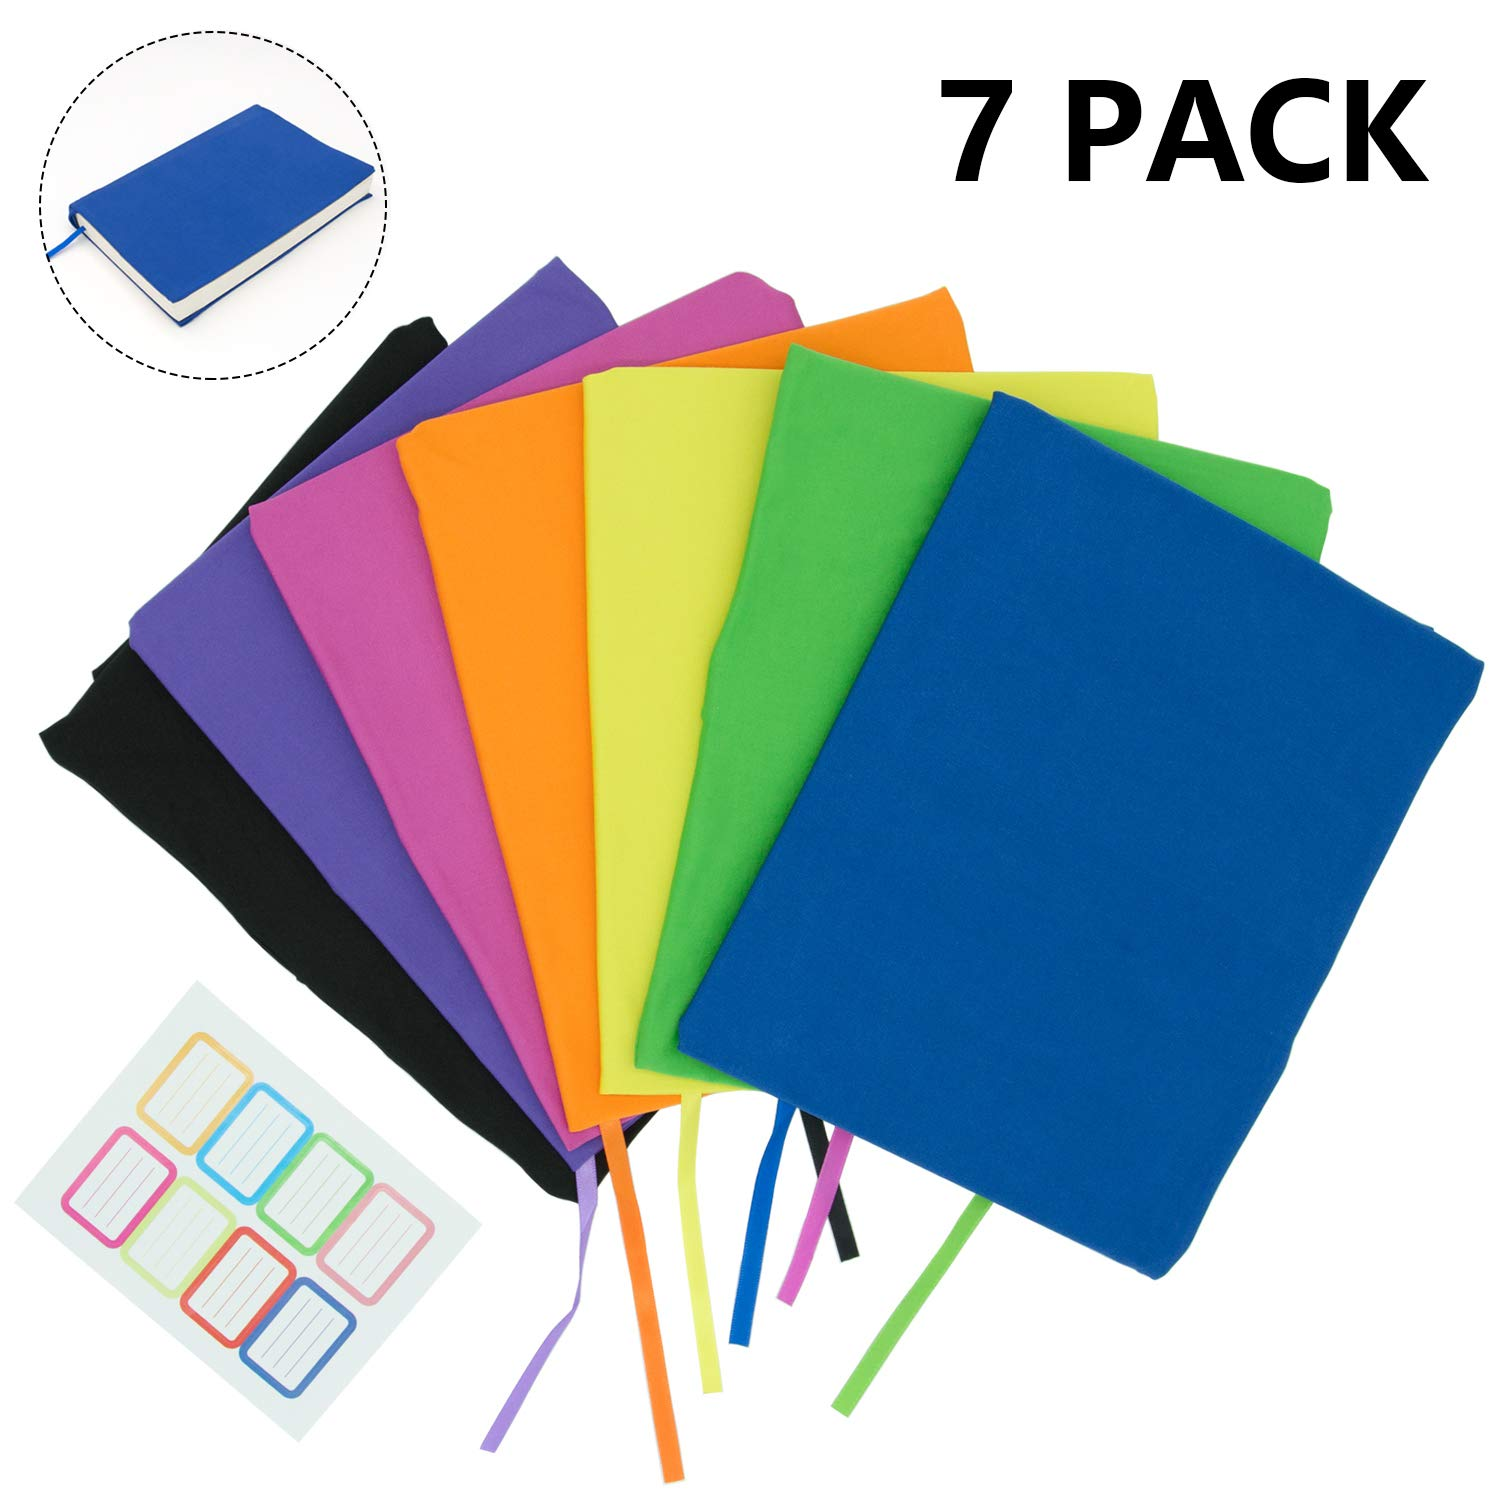 KIMCOME Jumbo Book Covers 7 Pack, Stretchable Book Sox Suitable For Most Hardcover Books, Up To 9.5 Inch x 14 Inch  Durable, Washable, Reusable Protective Textbook Covers with Label Sticker by KIMCOME